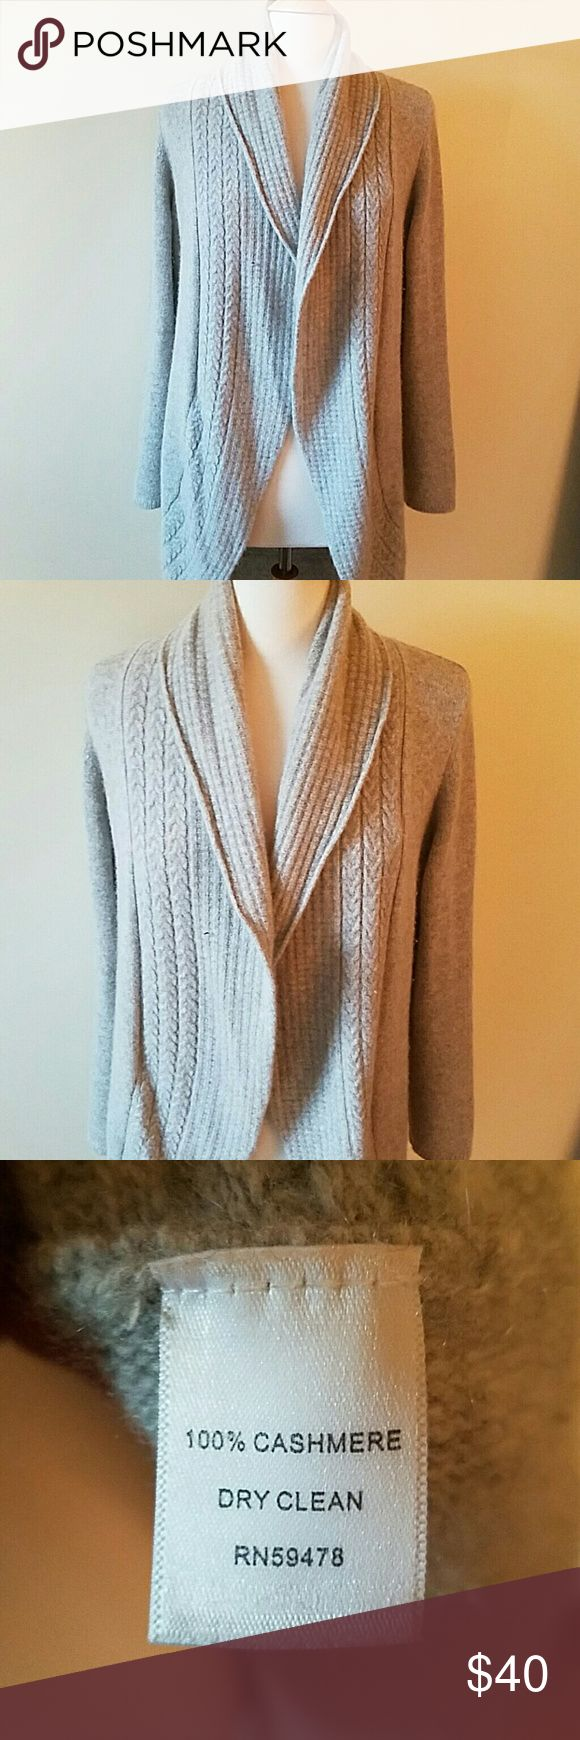 Laundry by Shelli Segal cashmere sweater Laundry by Shelli Segal Size Large Fits TTS Gray in color So soft Worn one time 100% cashmere Laundry by Shelli Segal Sweaters Cardigans